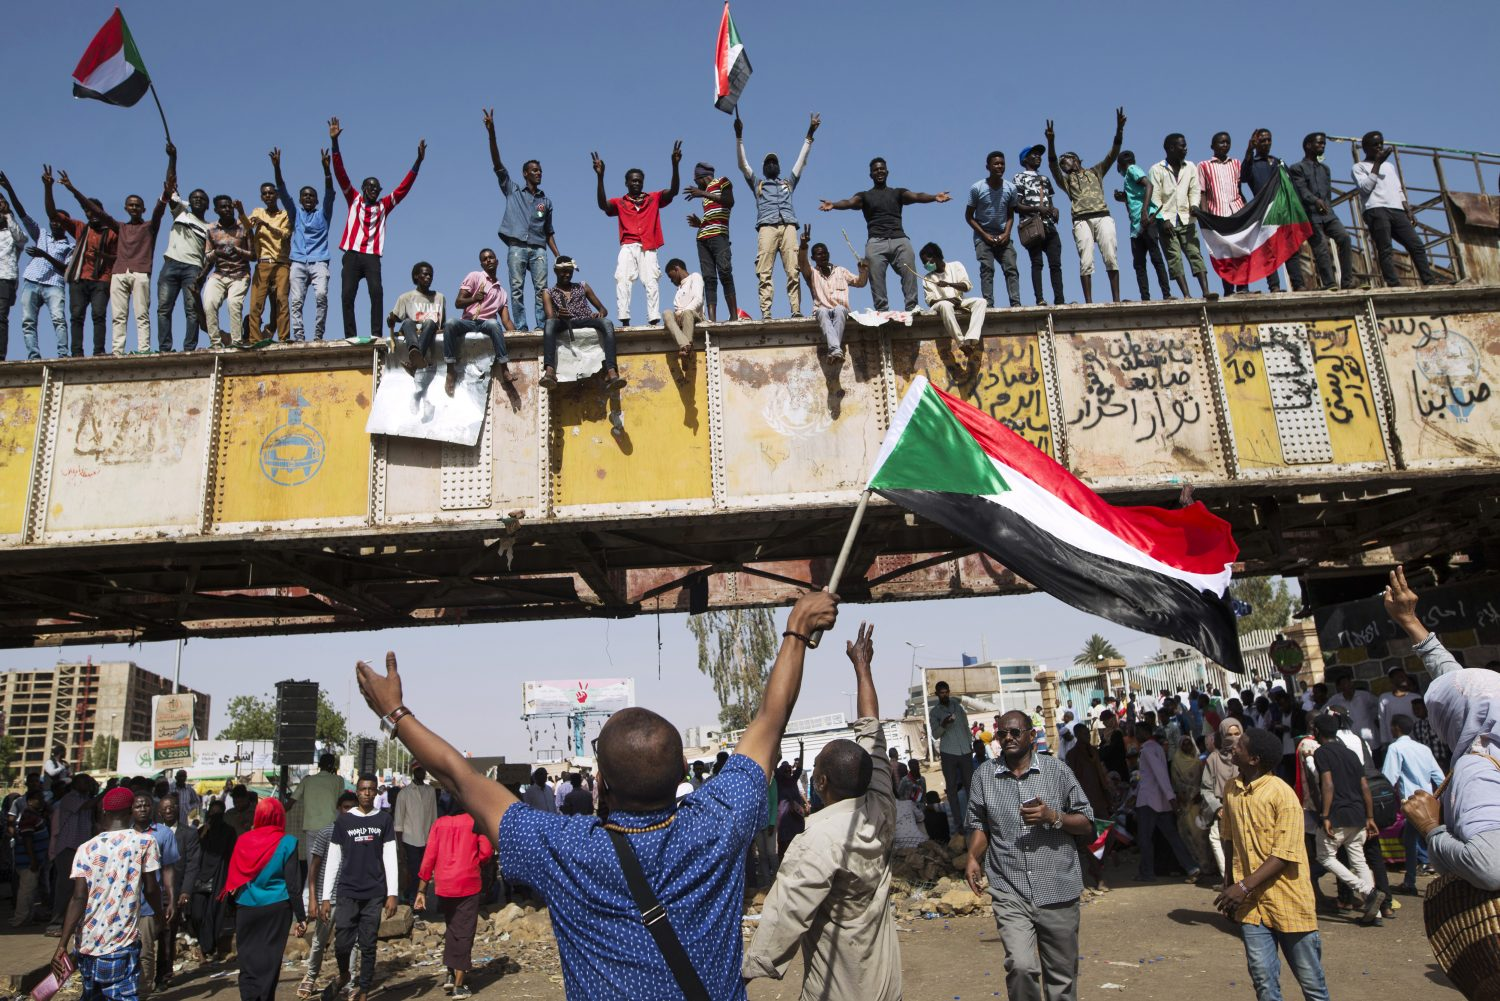 Protesters in the city centre of Karthoum, Sudan.